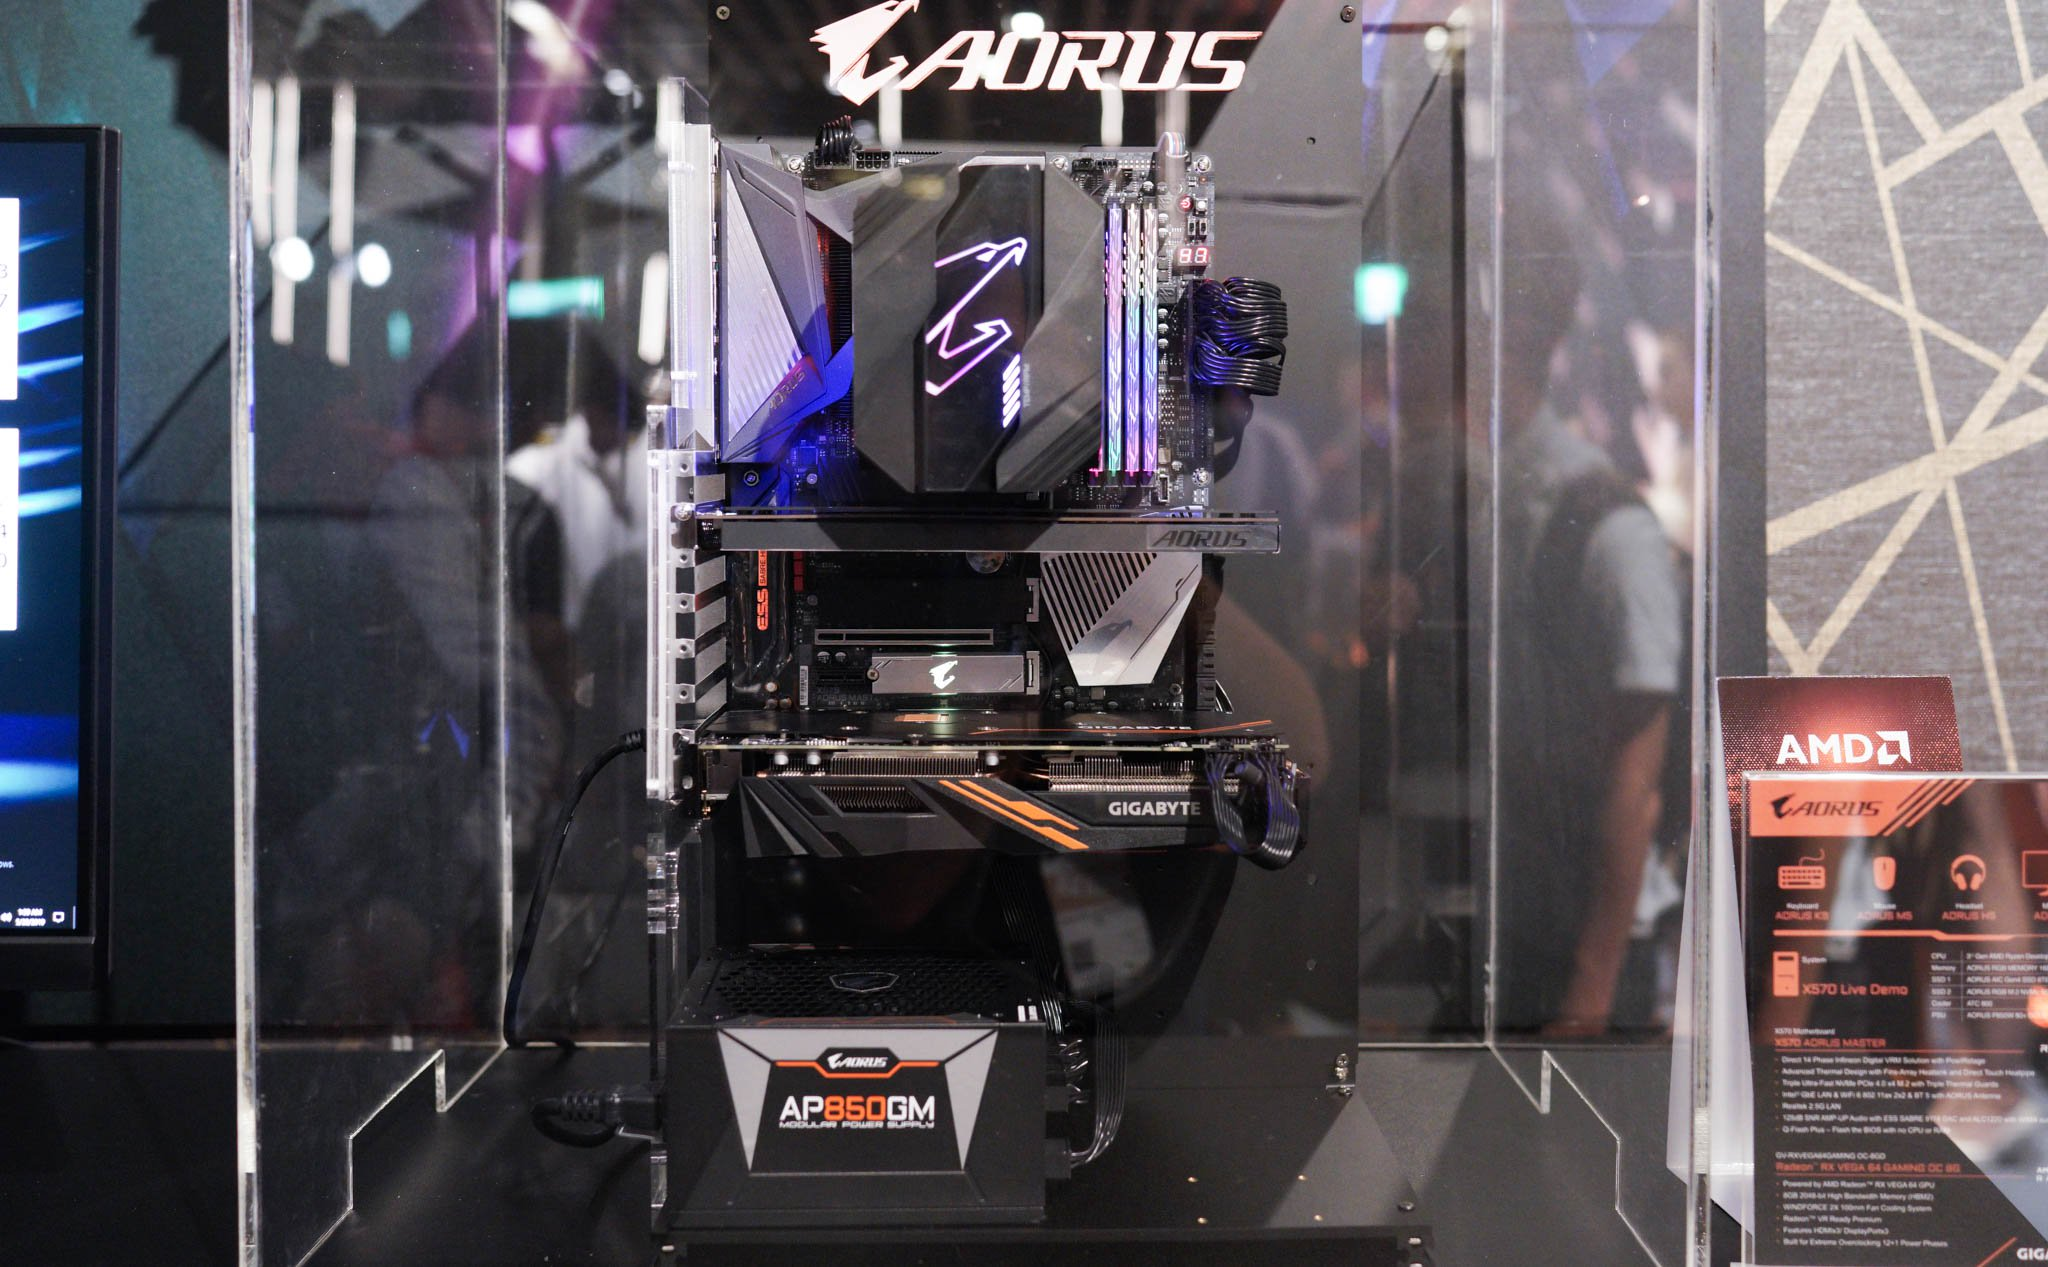 # Computex19: GIGABYTE launches the PCIe 4.0 ecosystem on Ryzen 3rd generation platform, 15 GB / s SSD